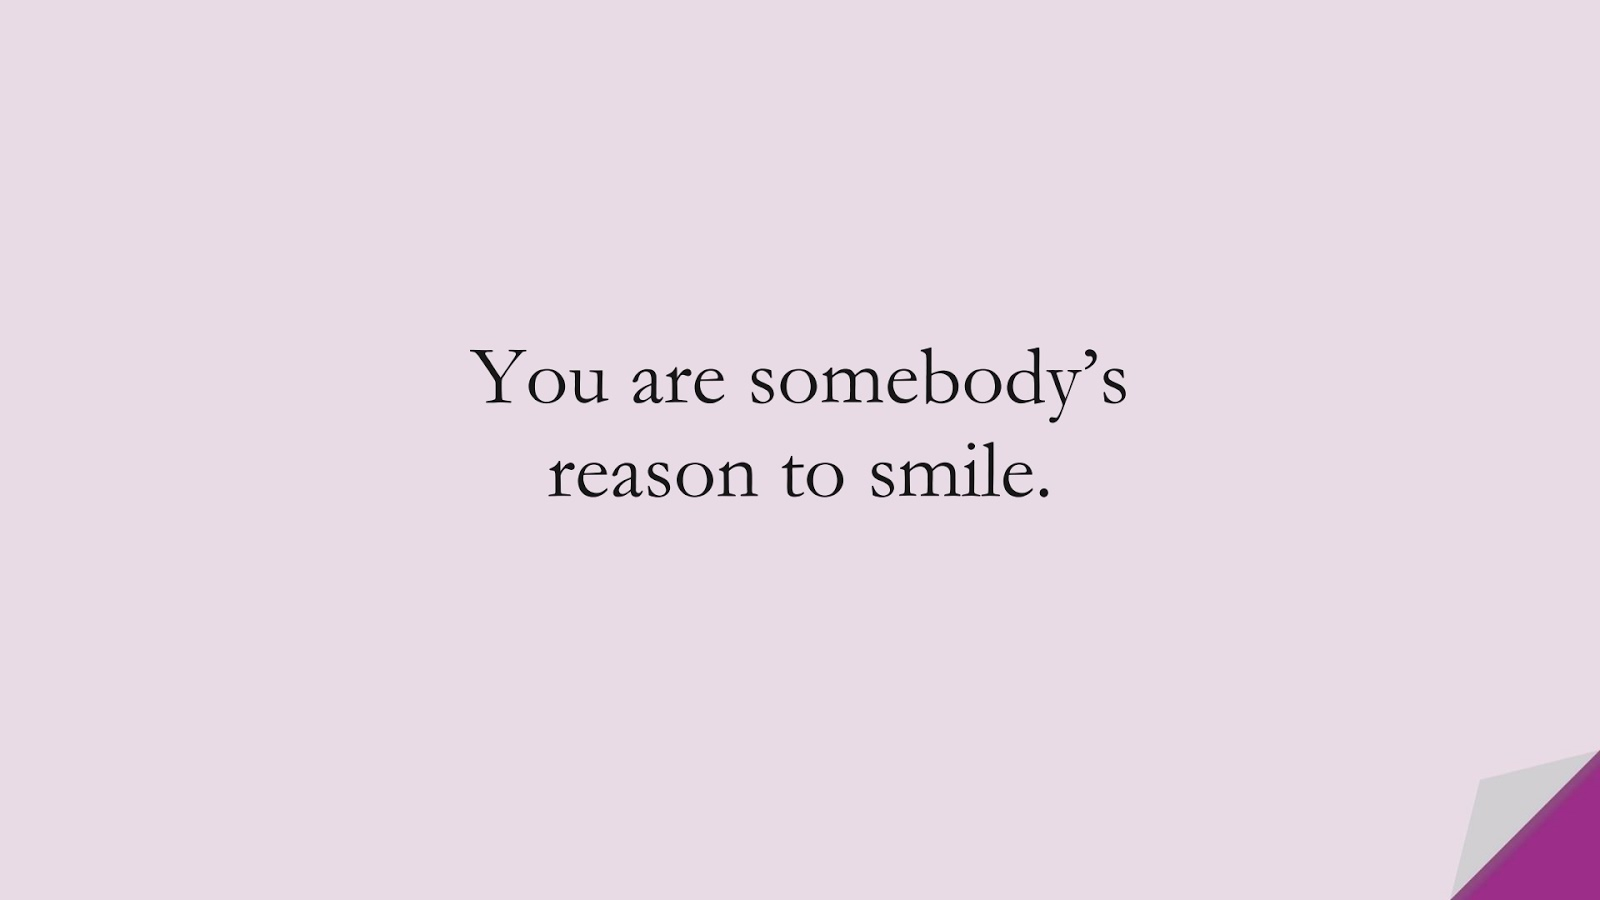 You are somebody's reason to smile.FALSE